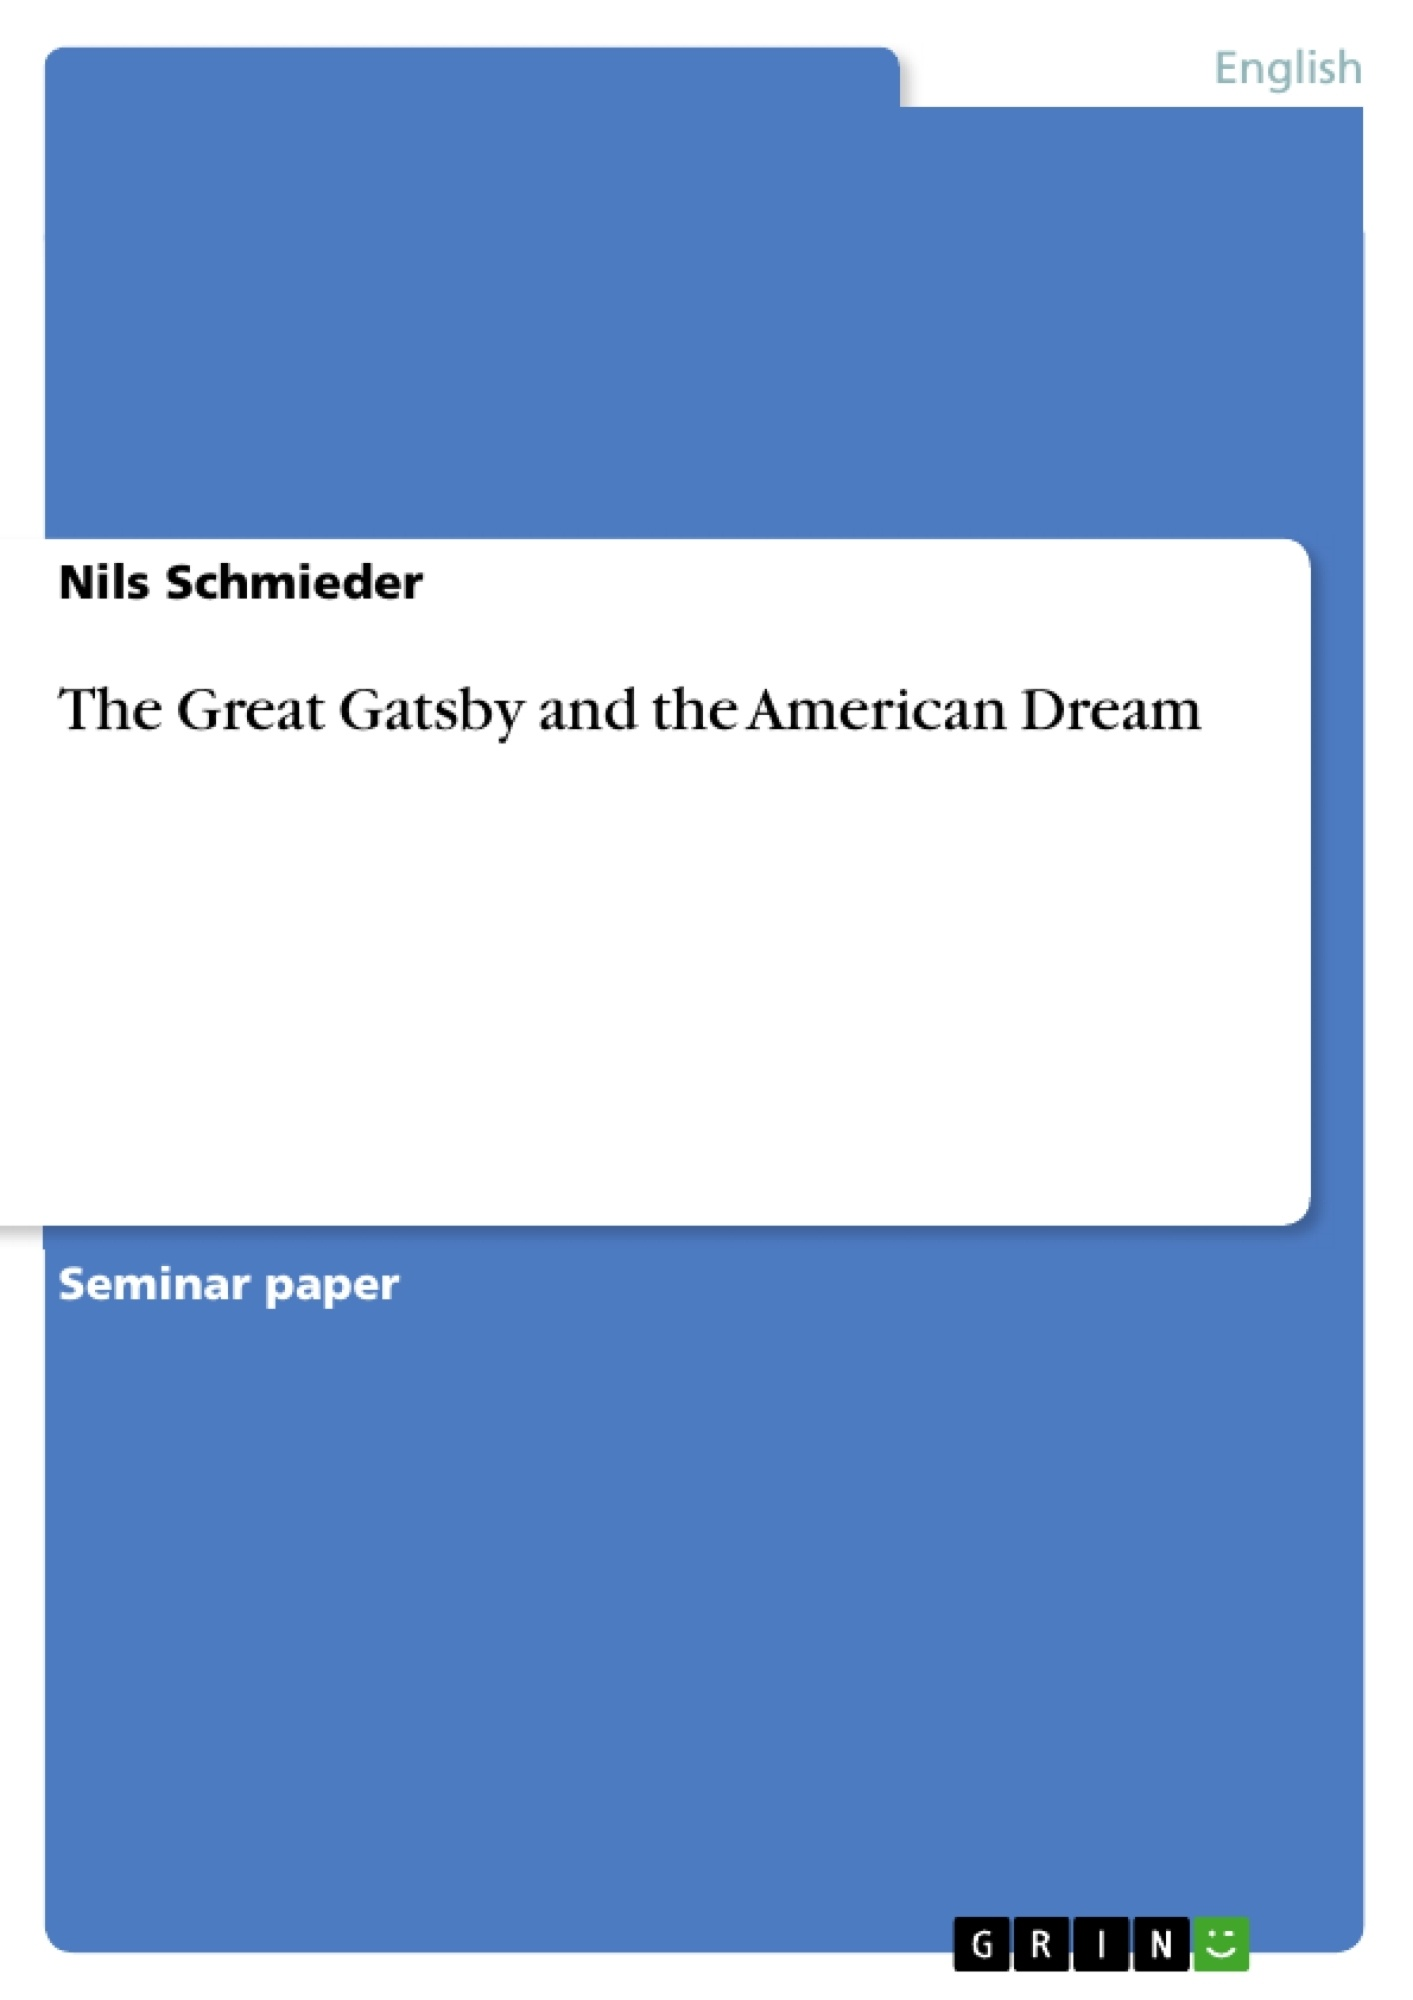 Title: The Great Gatsby and the American Dream